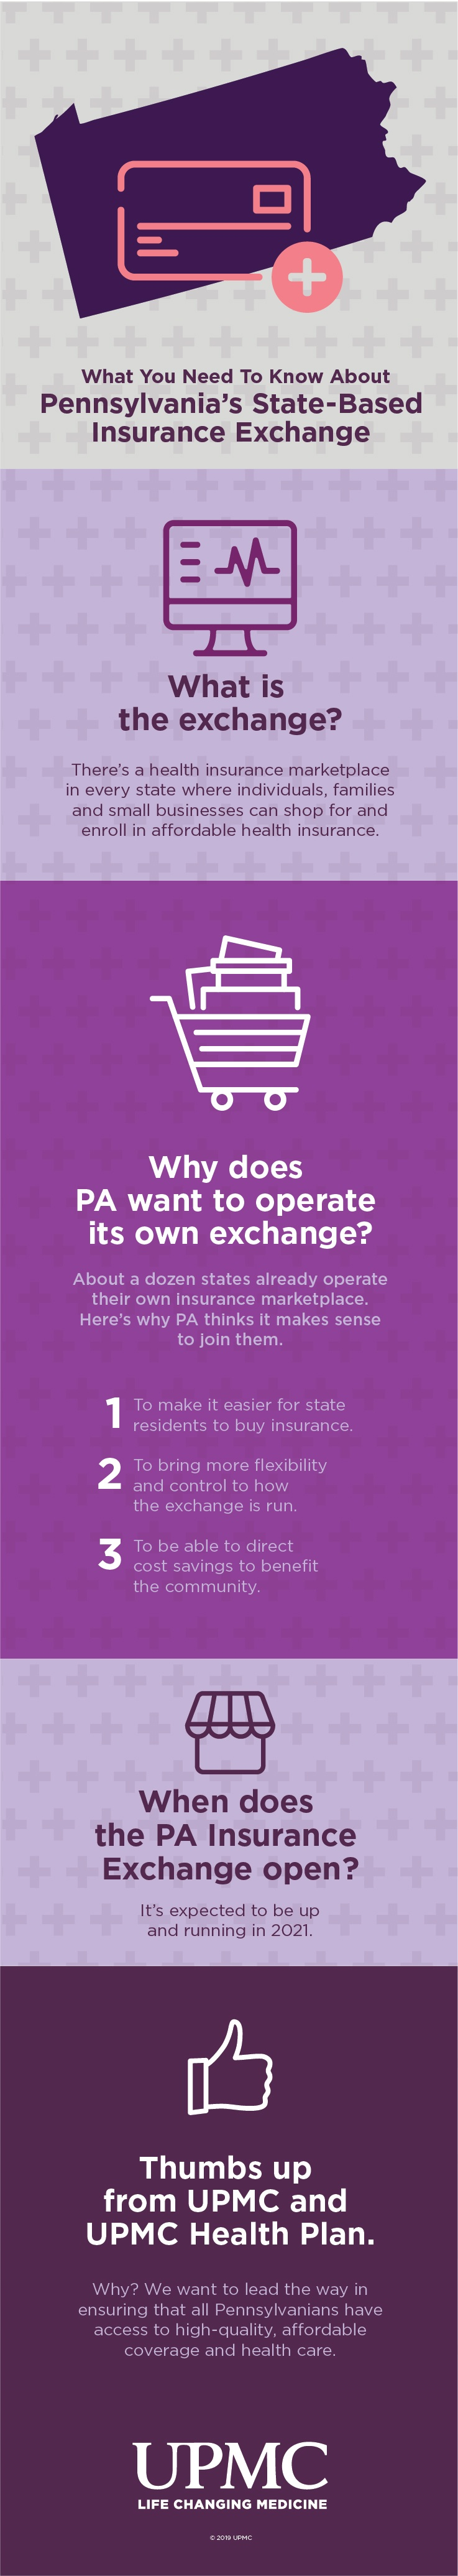 Learn more about Pennsylvania's new health insurance exchange.